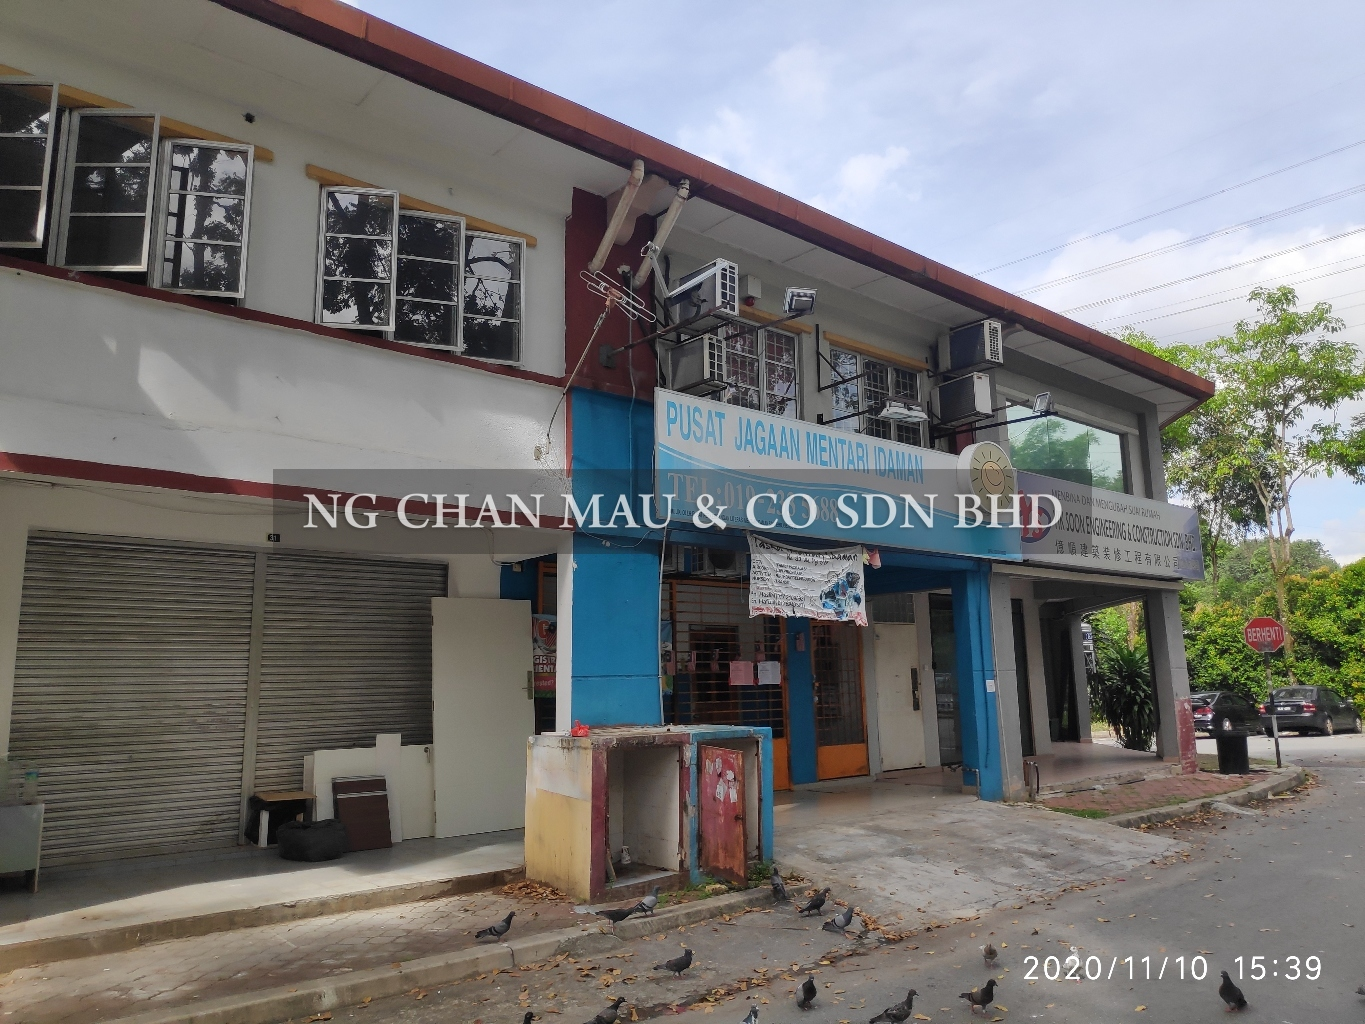 [Price dropped 19% + Vacant Unit] 2 Storey Shop Office, Intermediate [7 mins to AEON Mall Taman Equine]